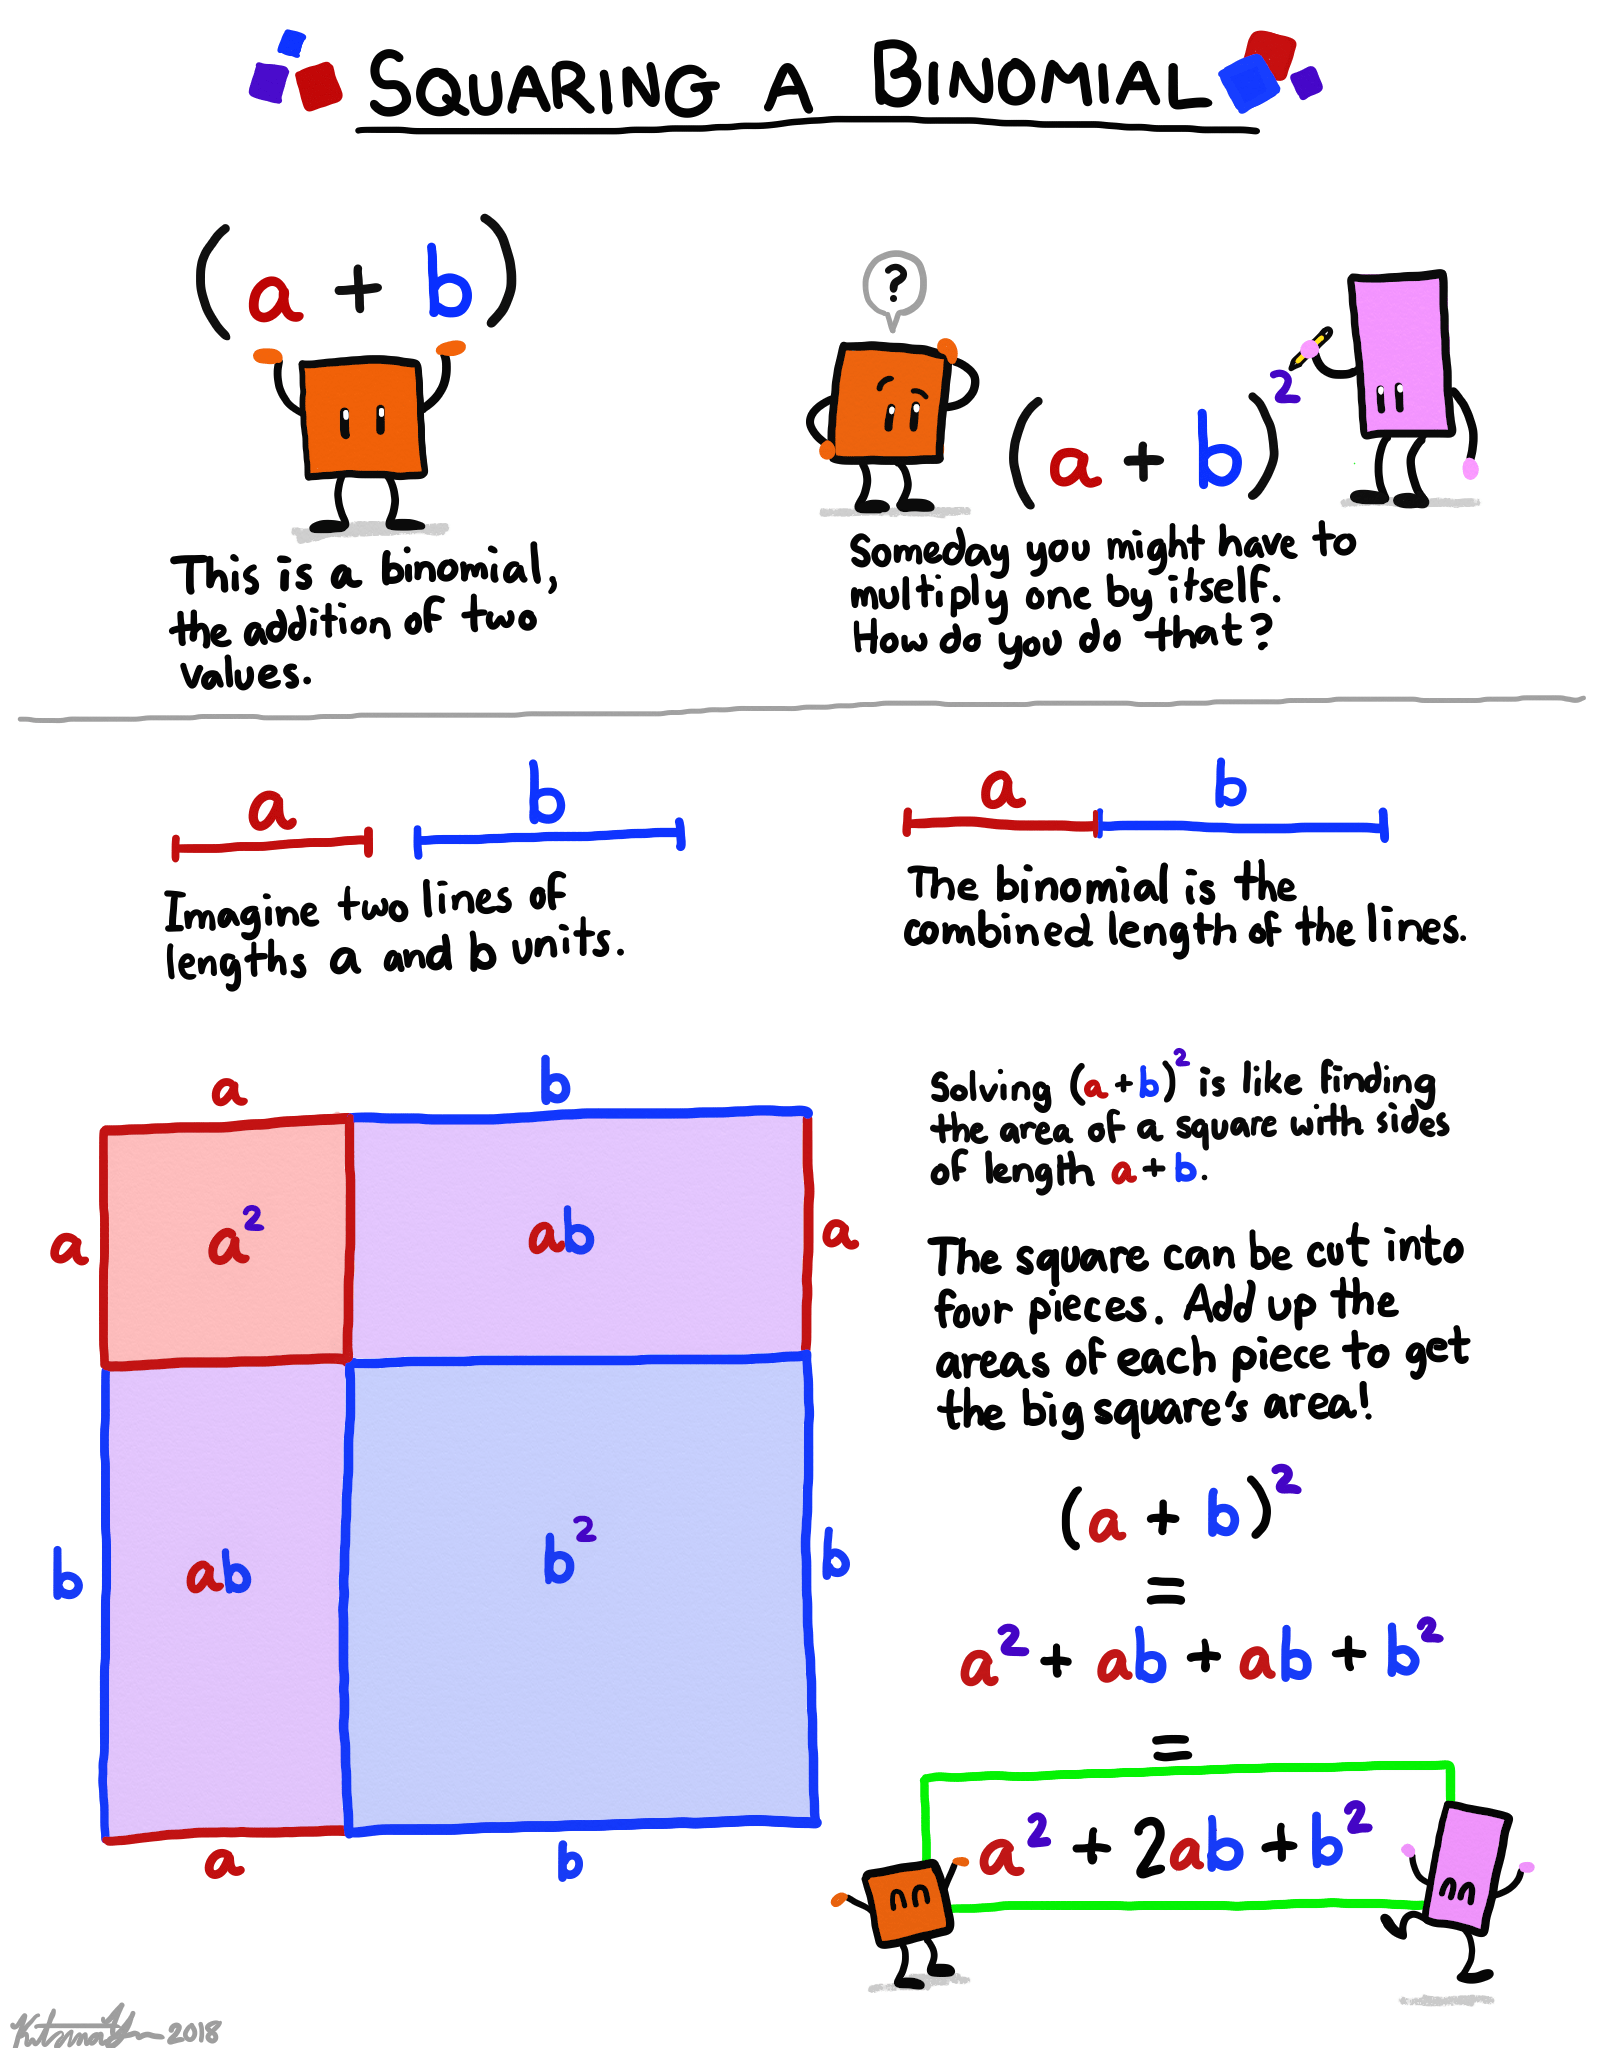 Squaring A Binomial Illustrated Matheducation